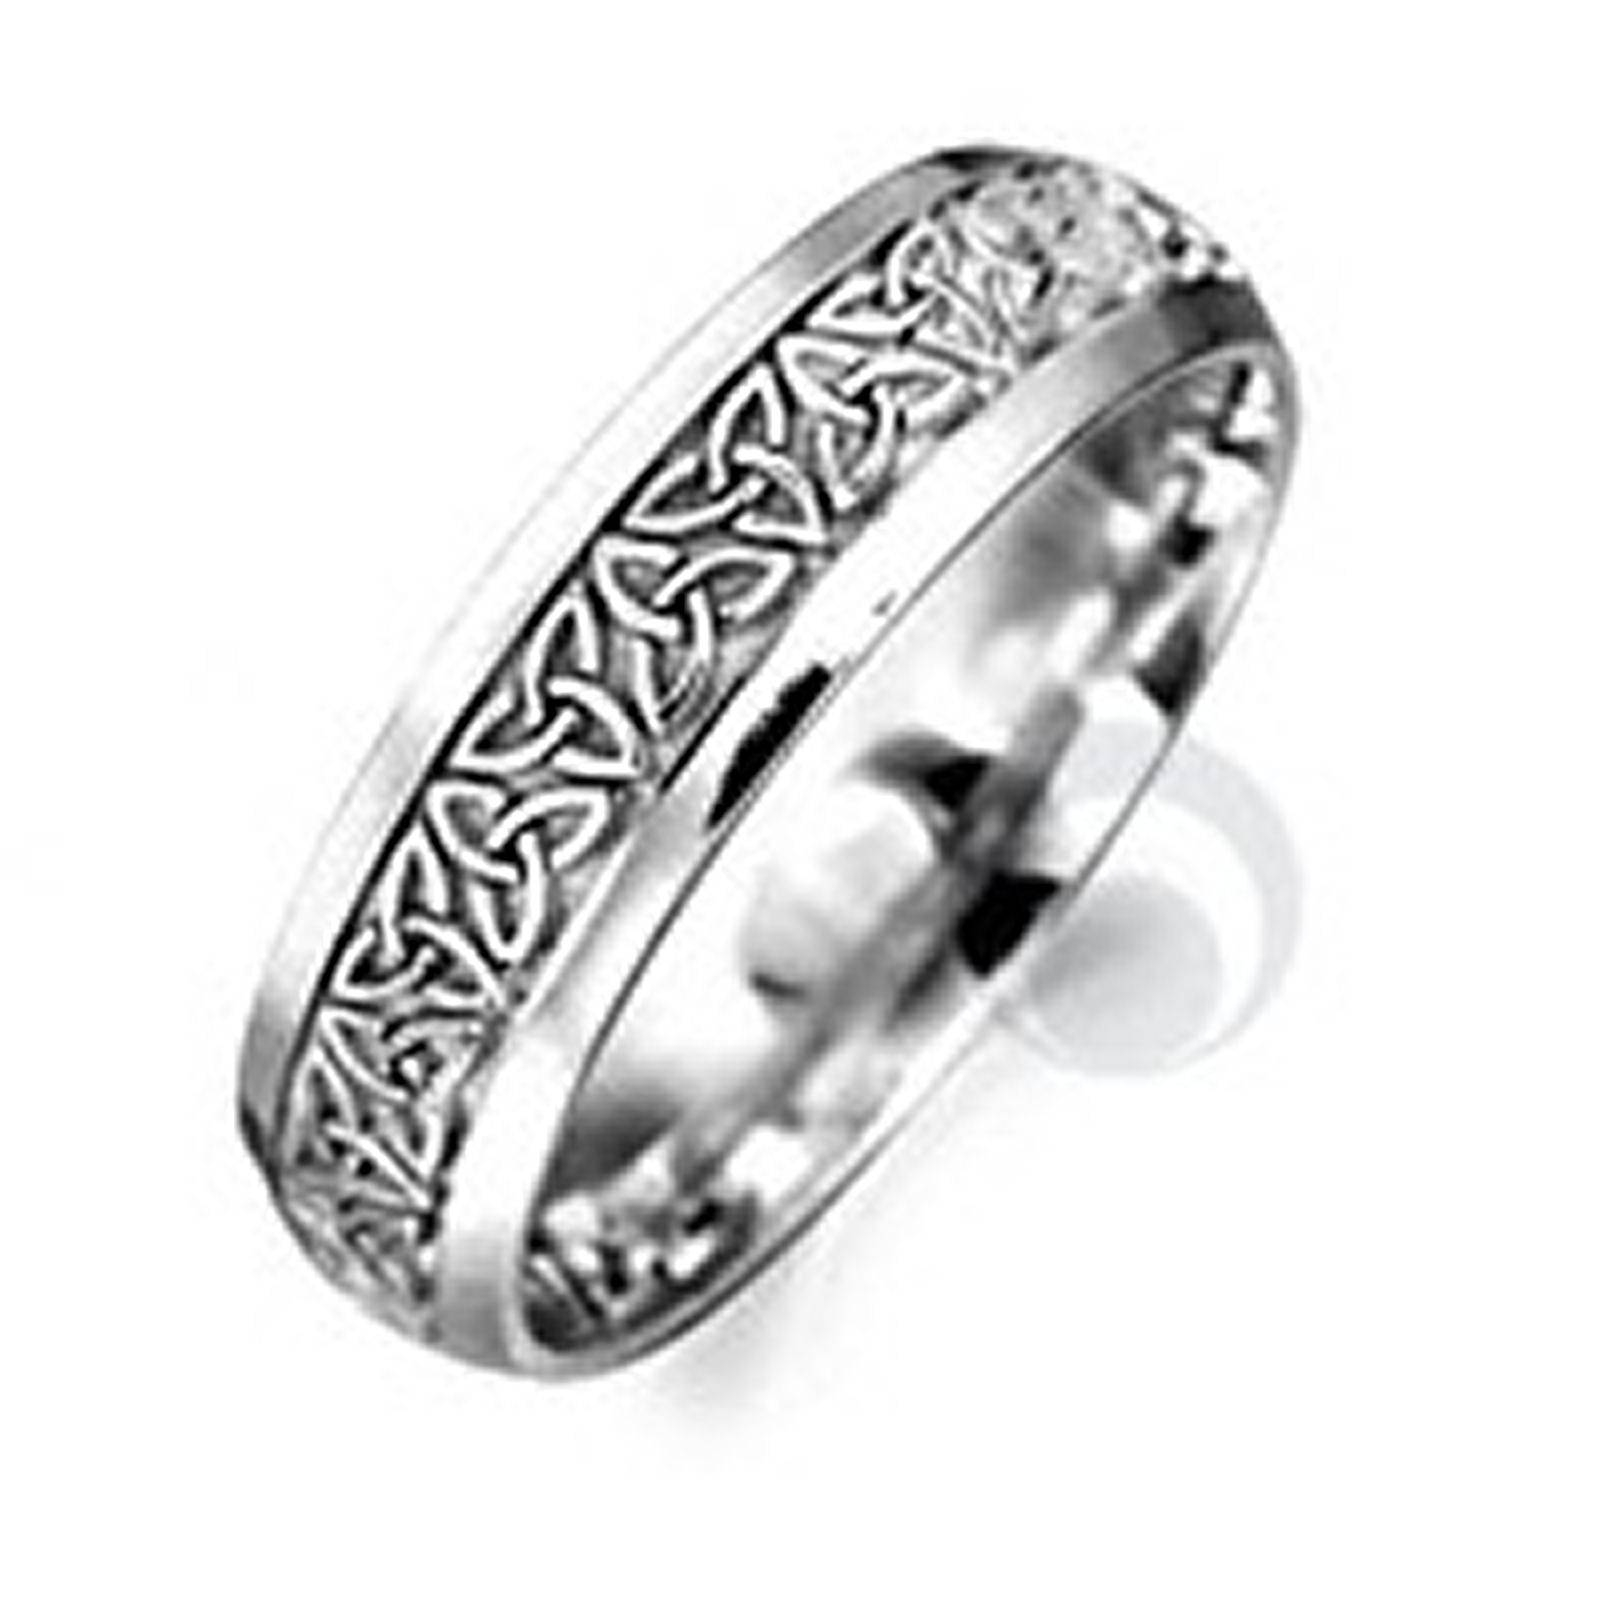 Celtic Patterned Platinum Wedding Ring Wedding Dress From The Inside 2018 Platium Wedding Bands (View 6 of 15)